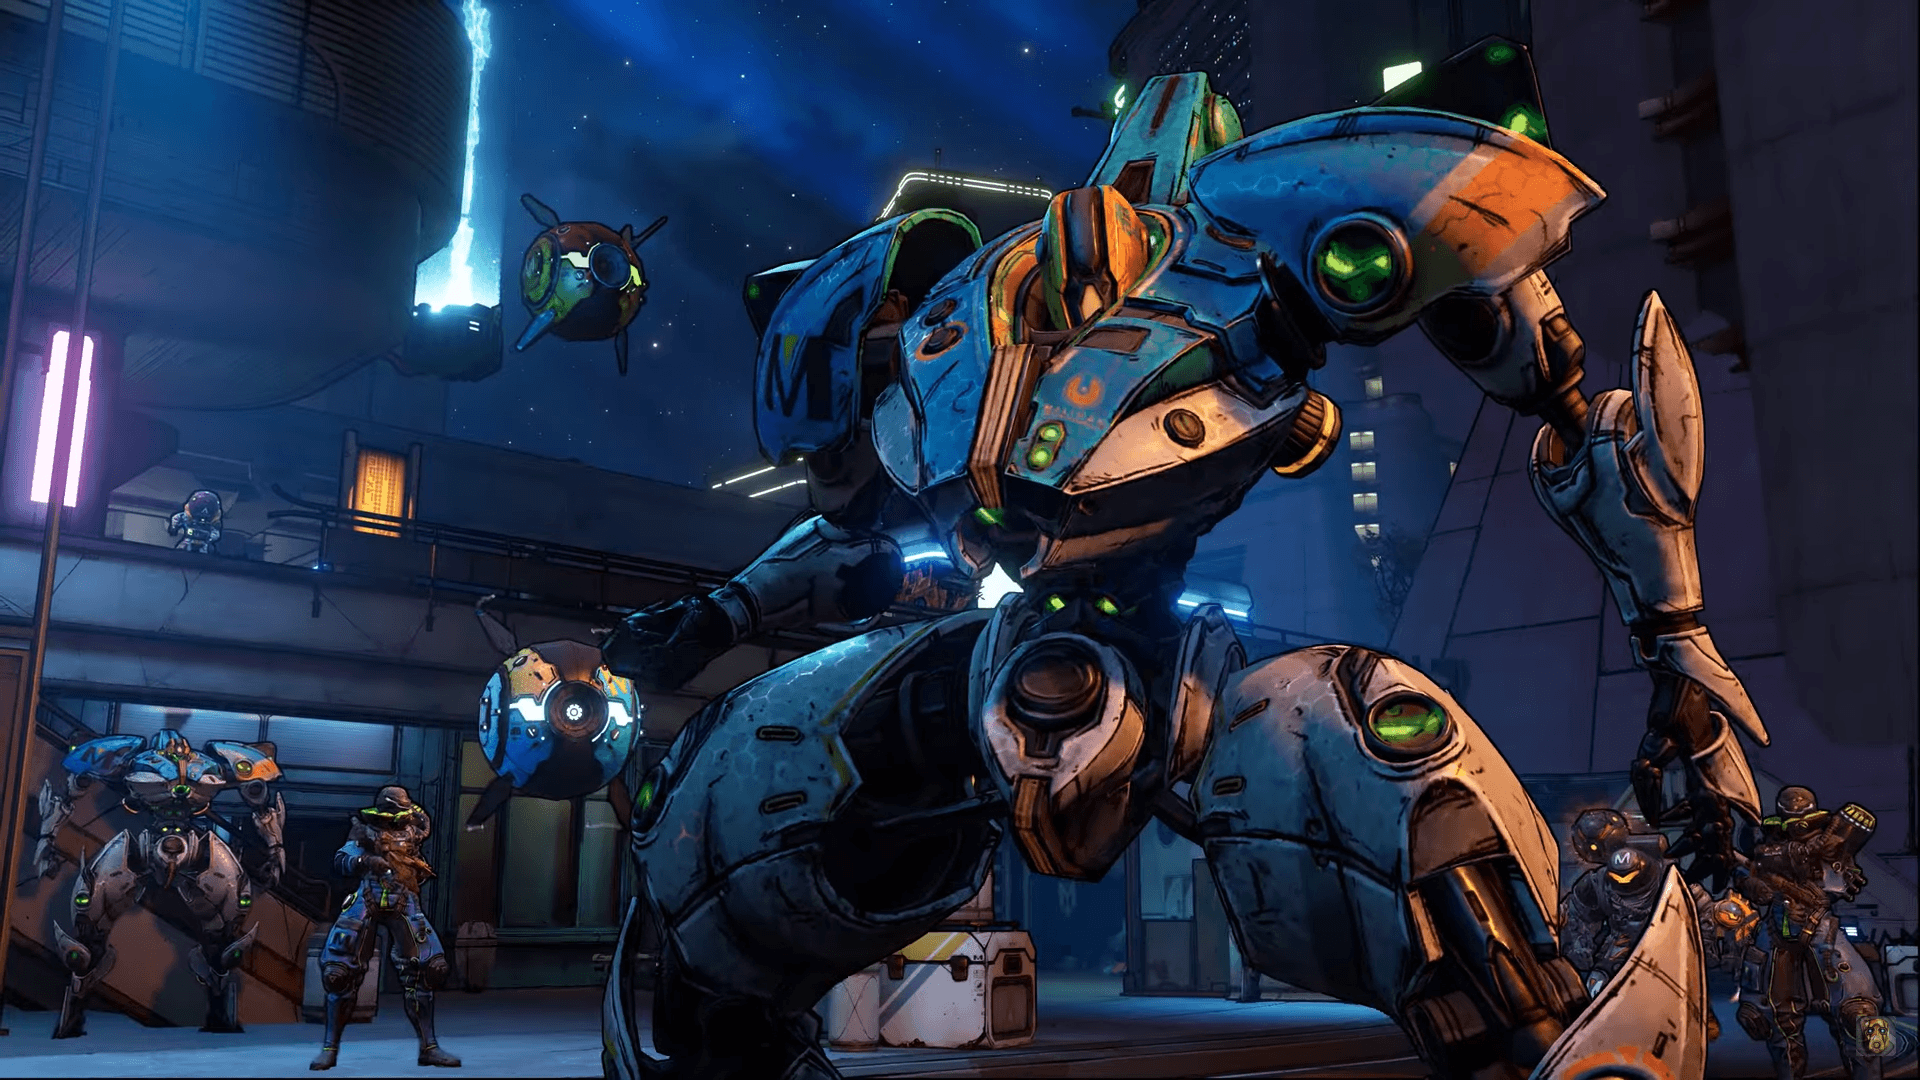 Borderlands 3 Release Date Revealed By A Deleted Tweet